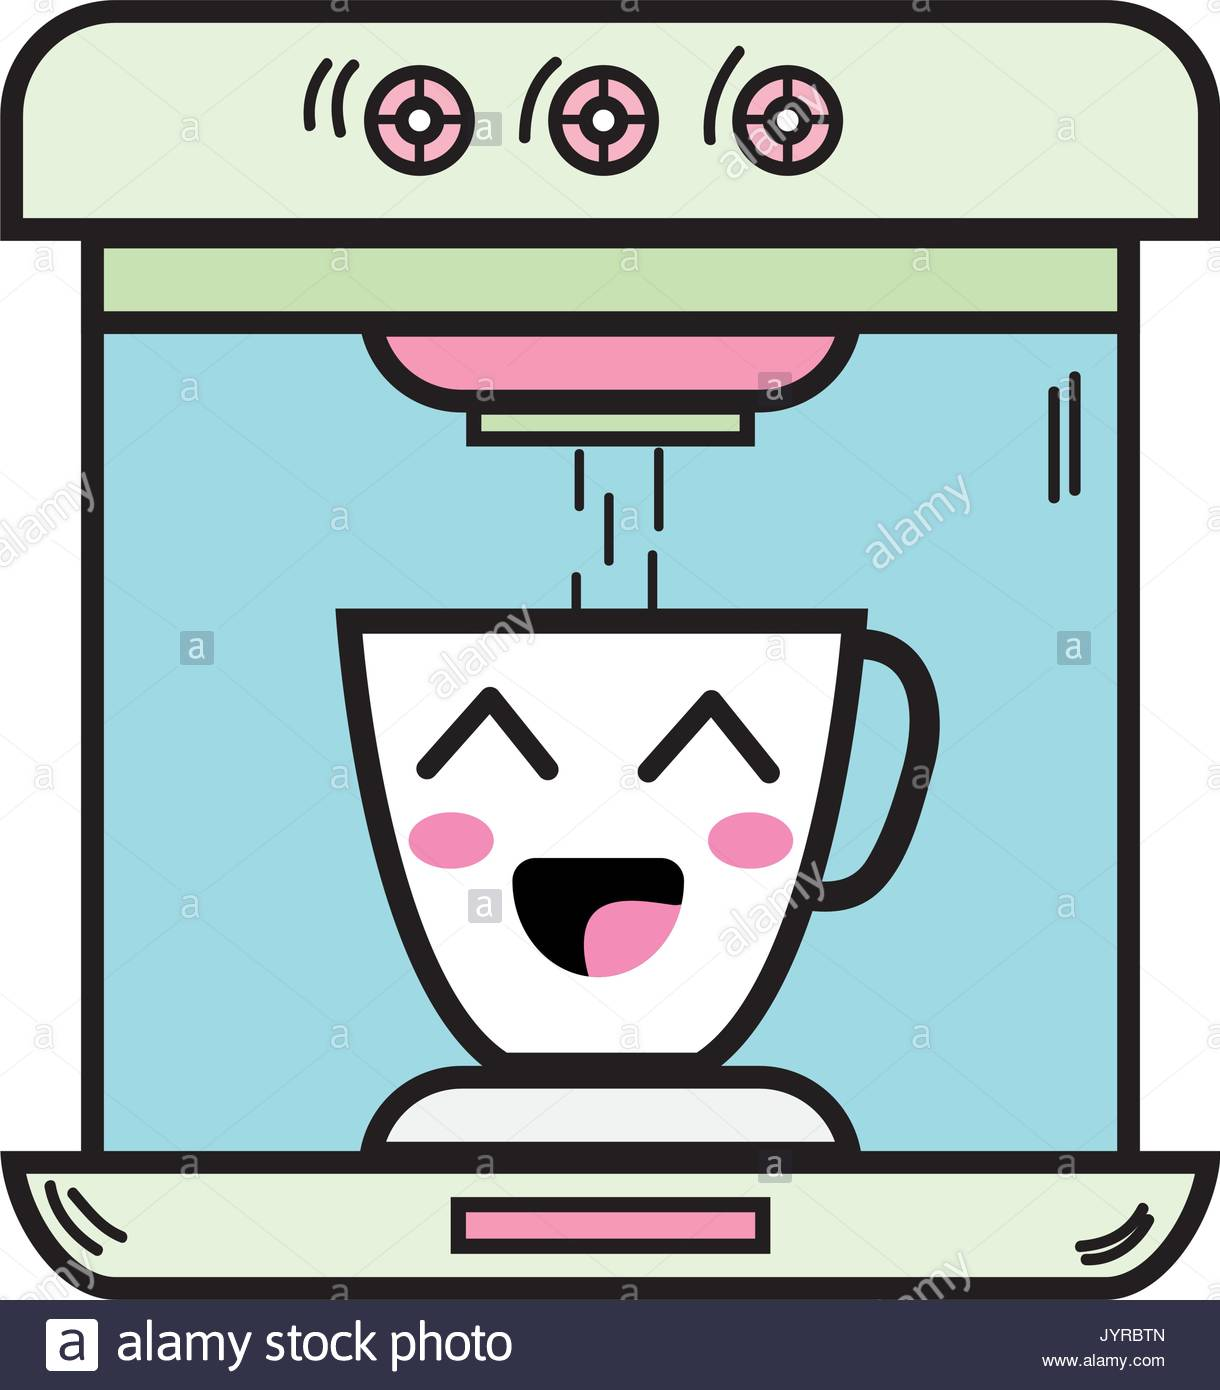 kawaii cute happy coffee maker technology Stock Vector Art ... #happyCoffee